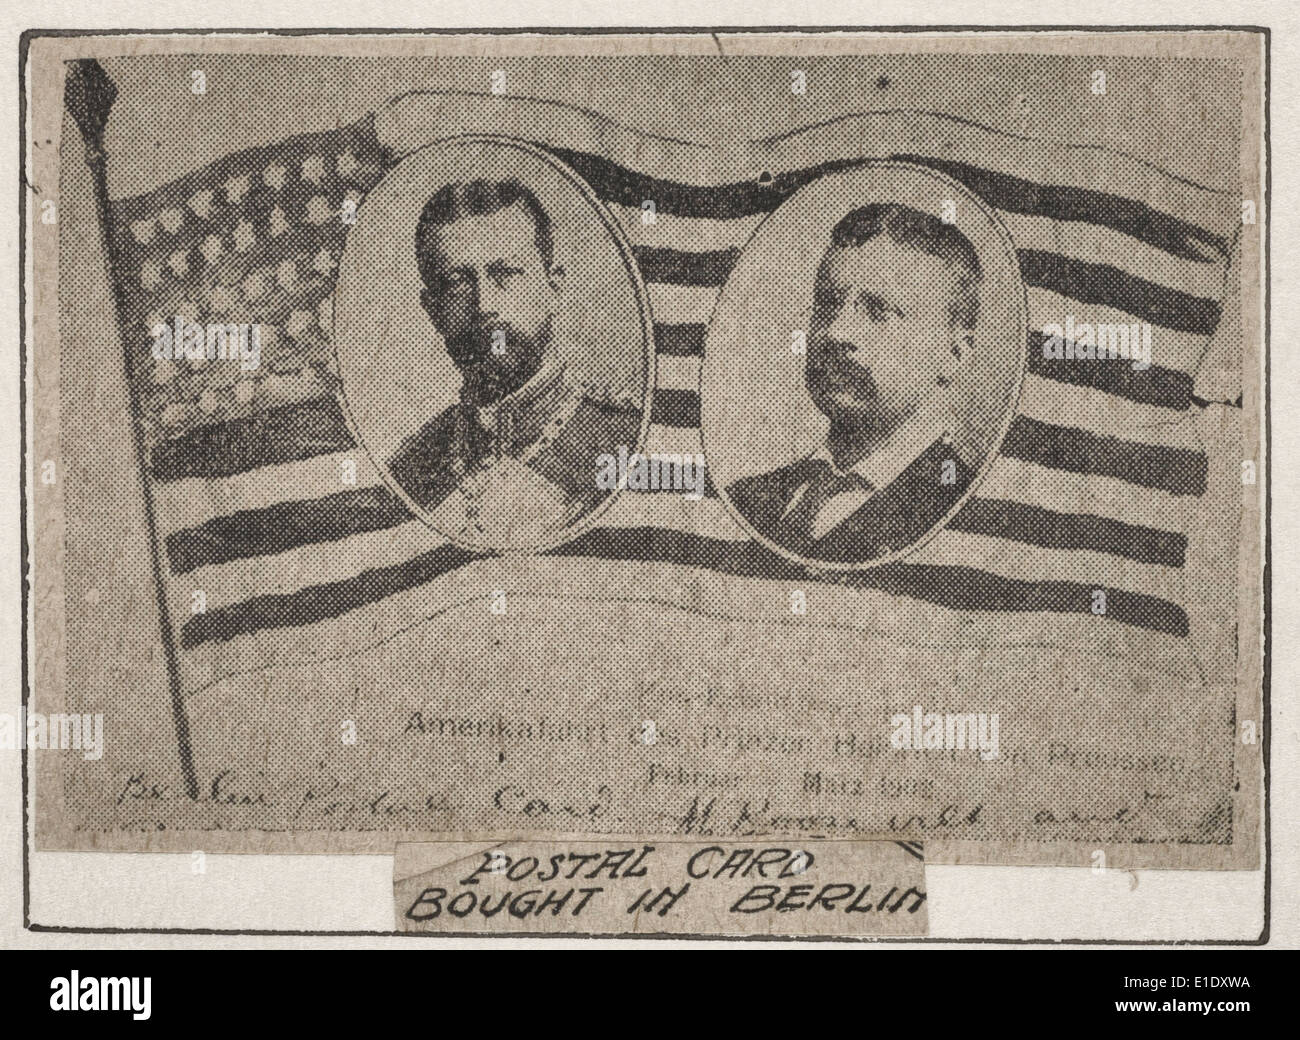 Postal card bought in Berlin.  Print (probably a news clipping) showing portraits of President Theodore Roosevelt and Prince Henry of Prussia on the American flag, circa 1905 - Stock Image